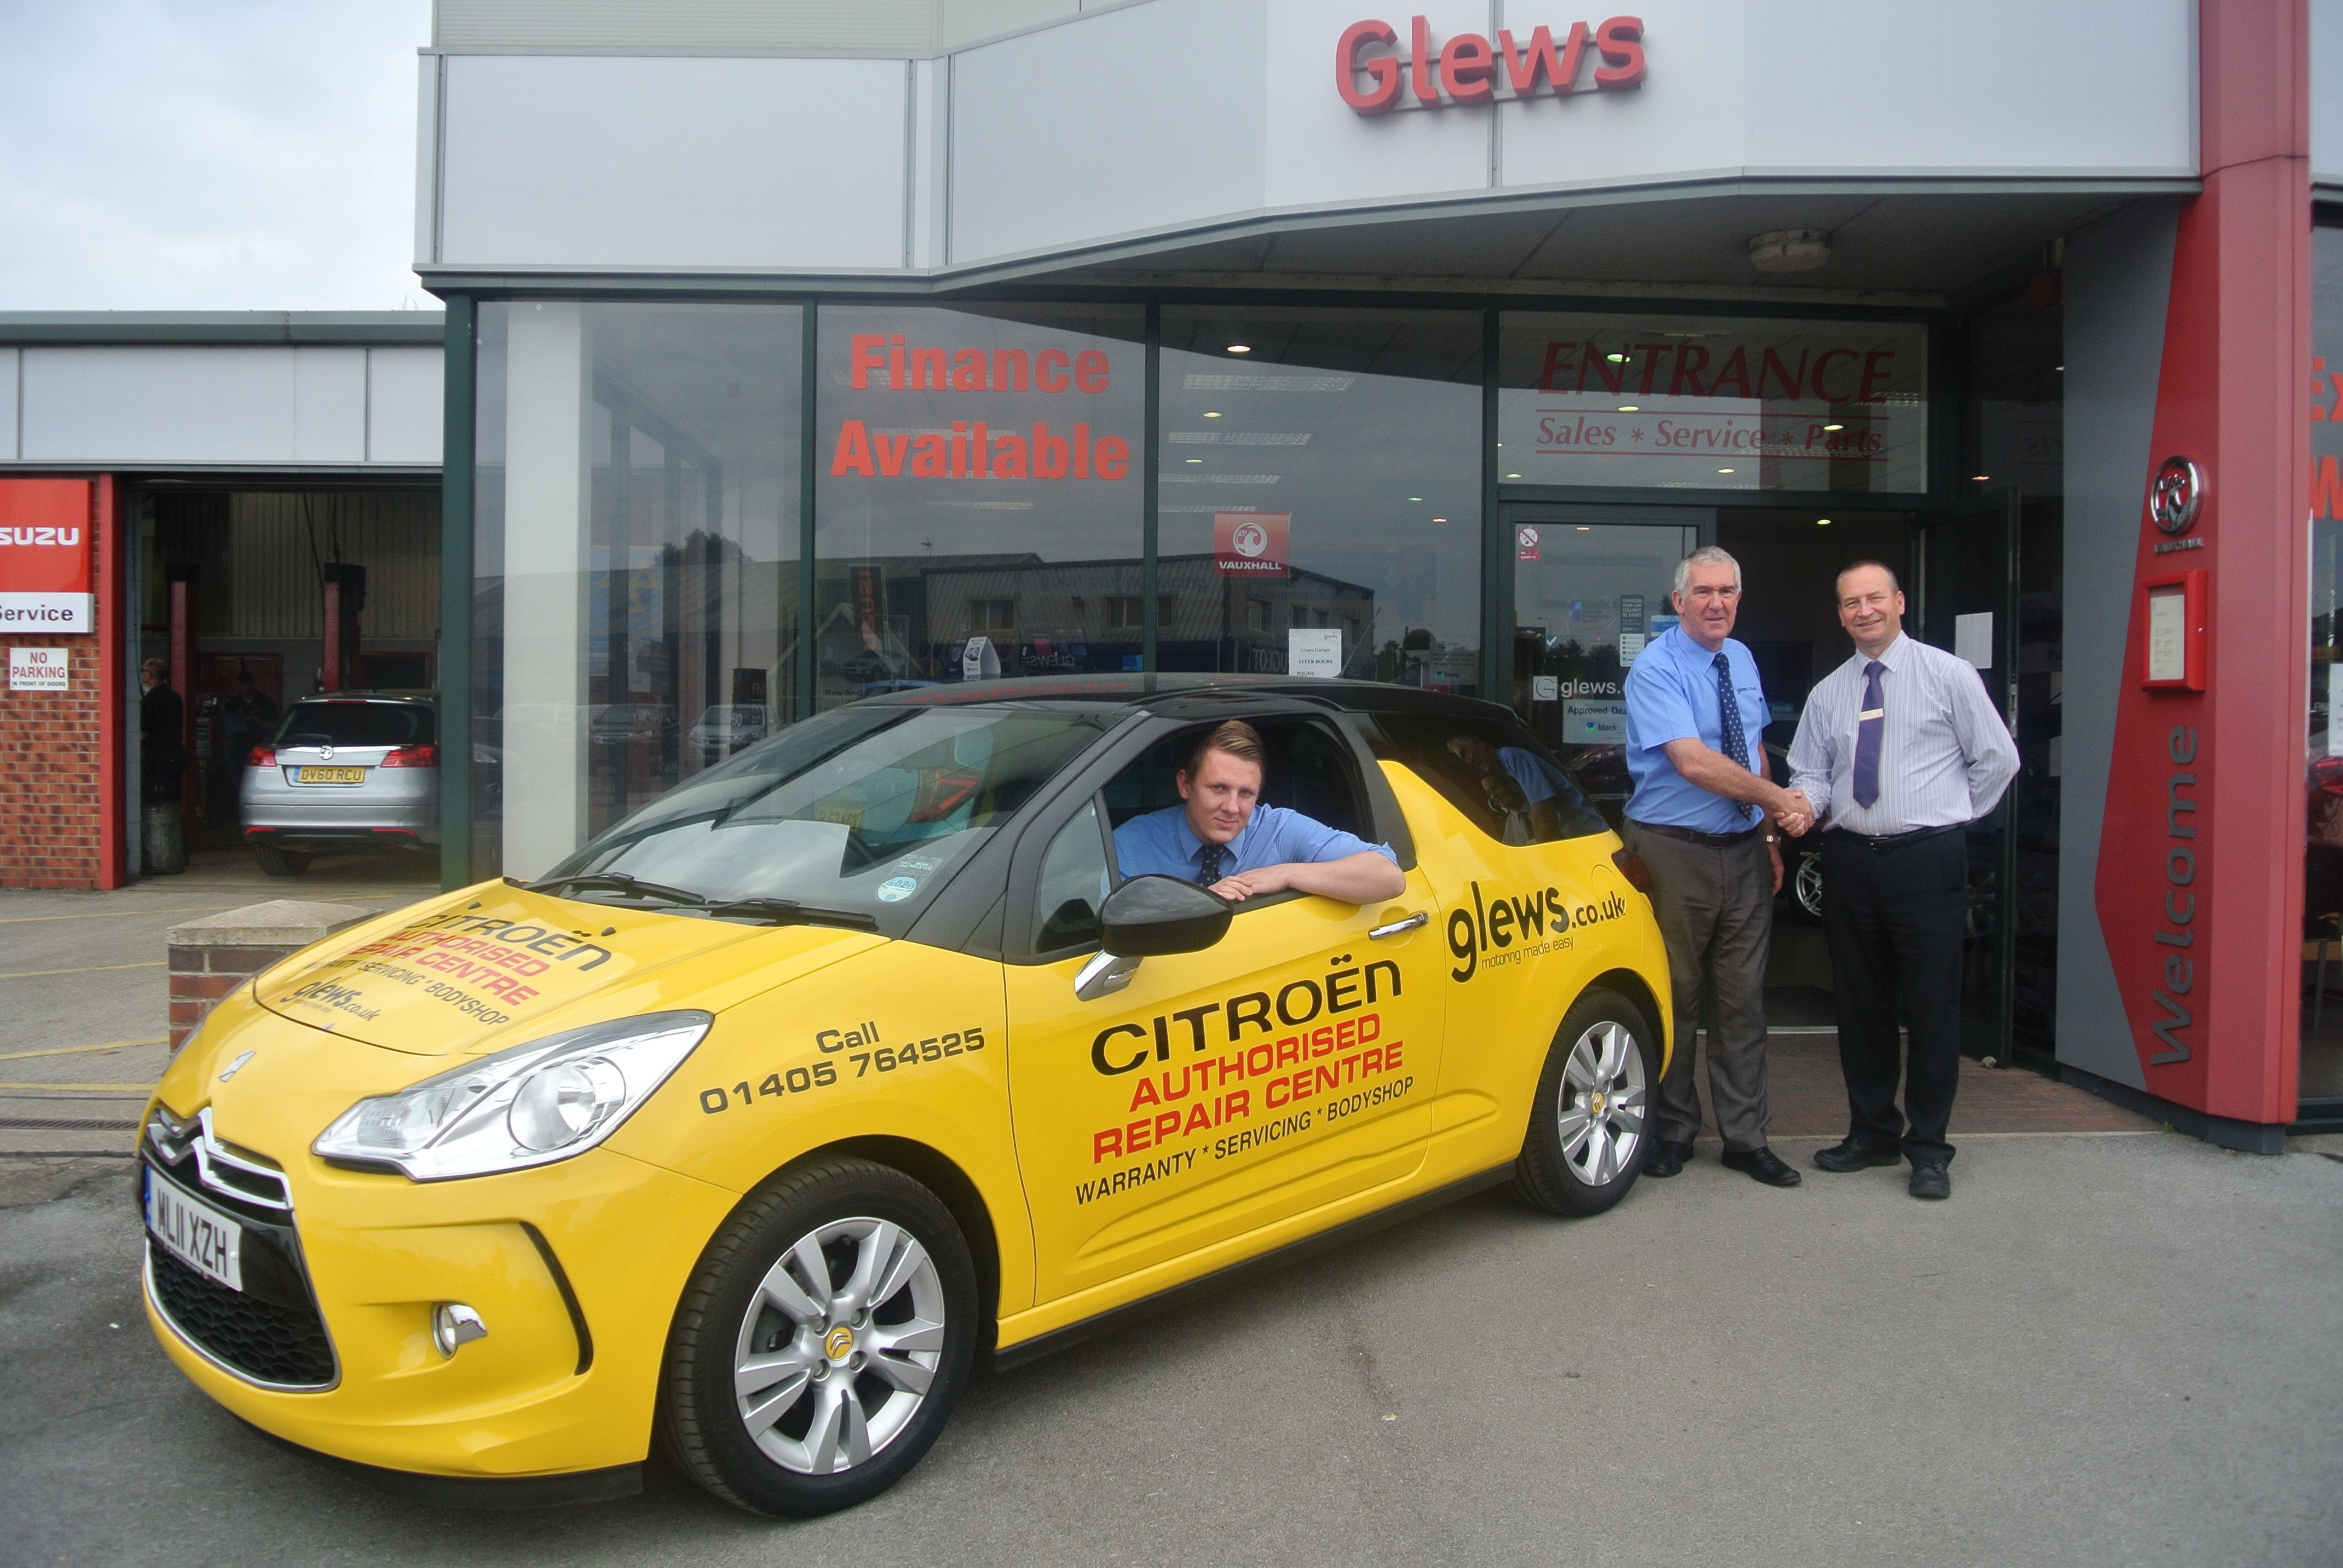 Glews Garage is Citroën approved repairer